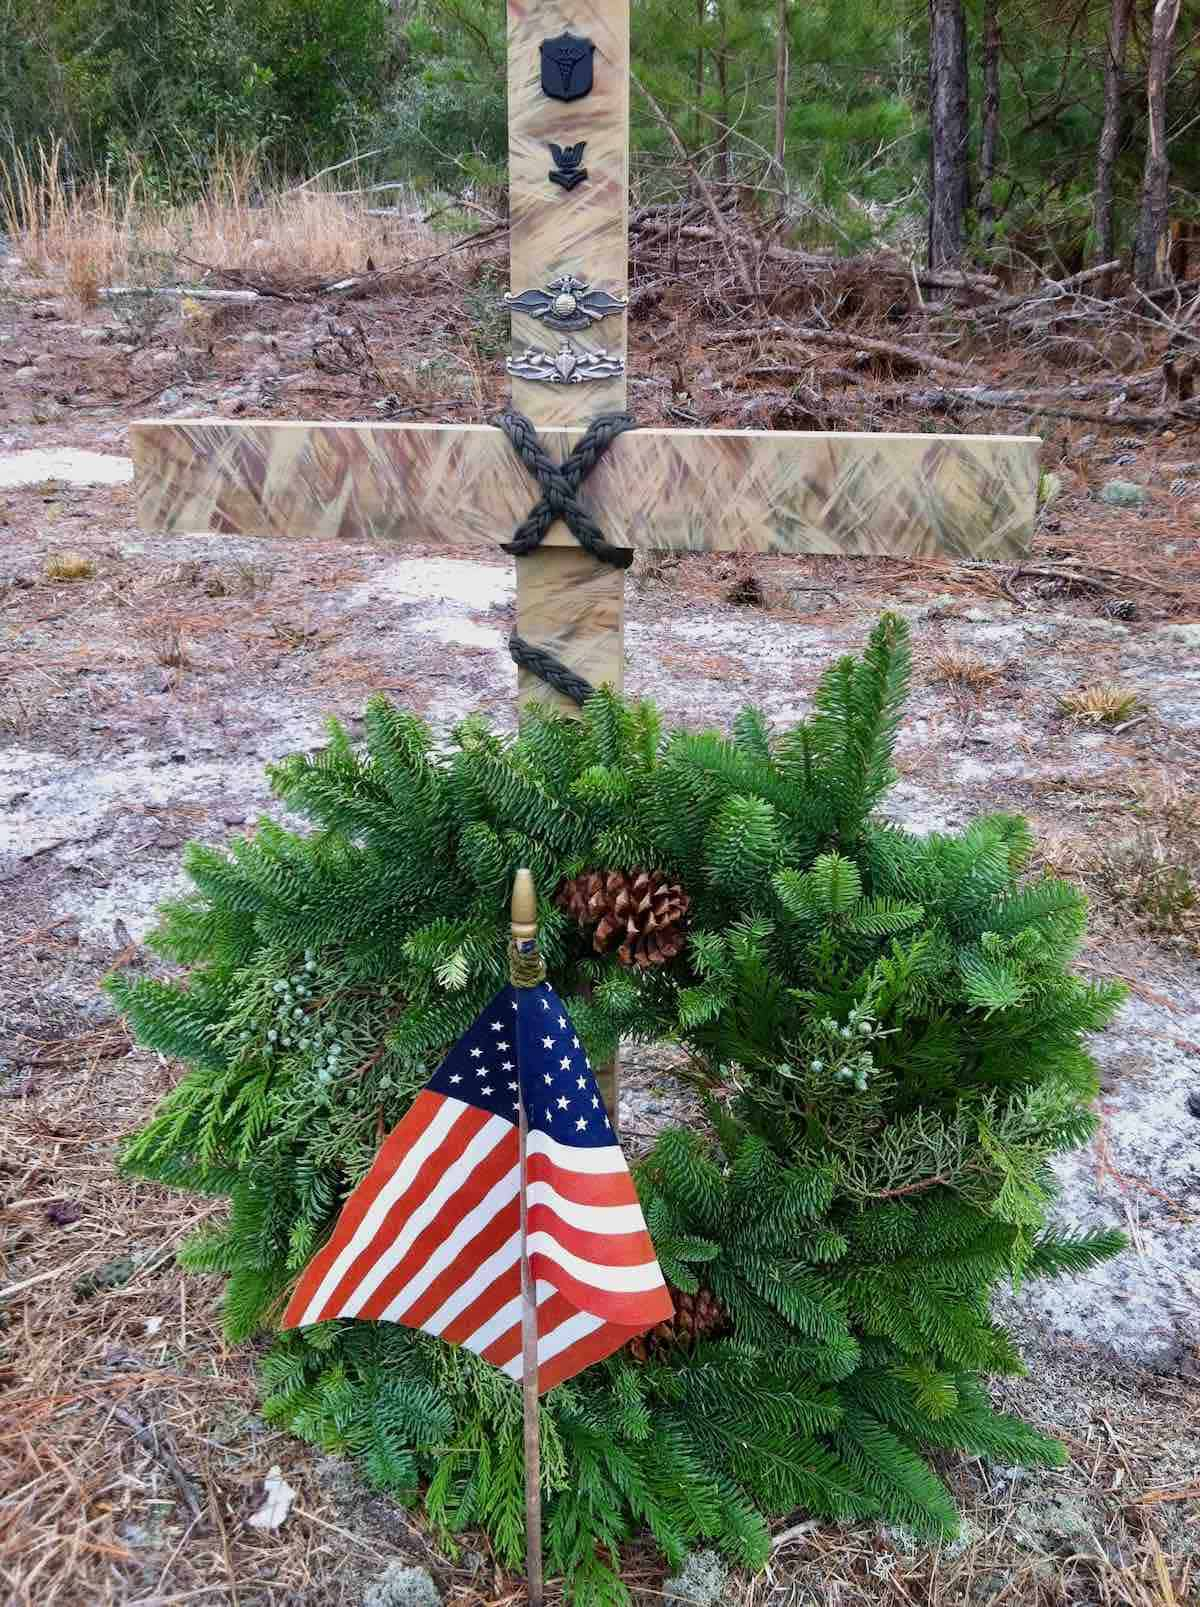 road side memorial wreath where my son was killed